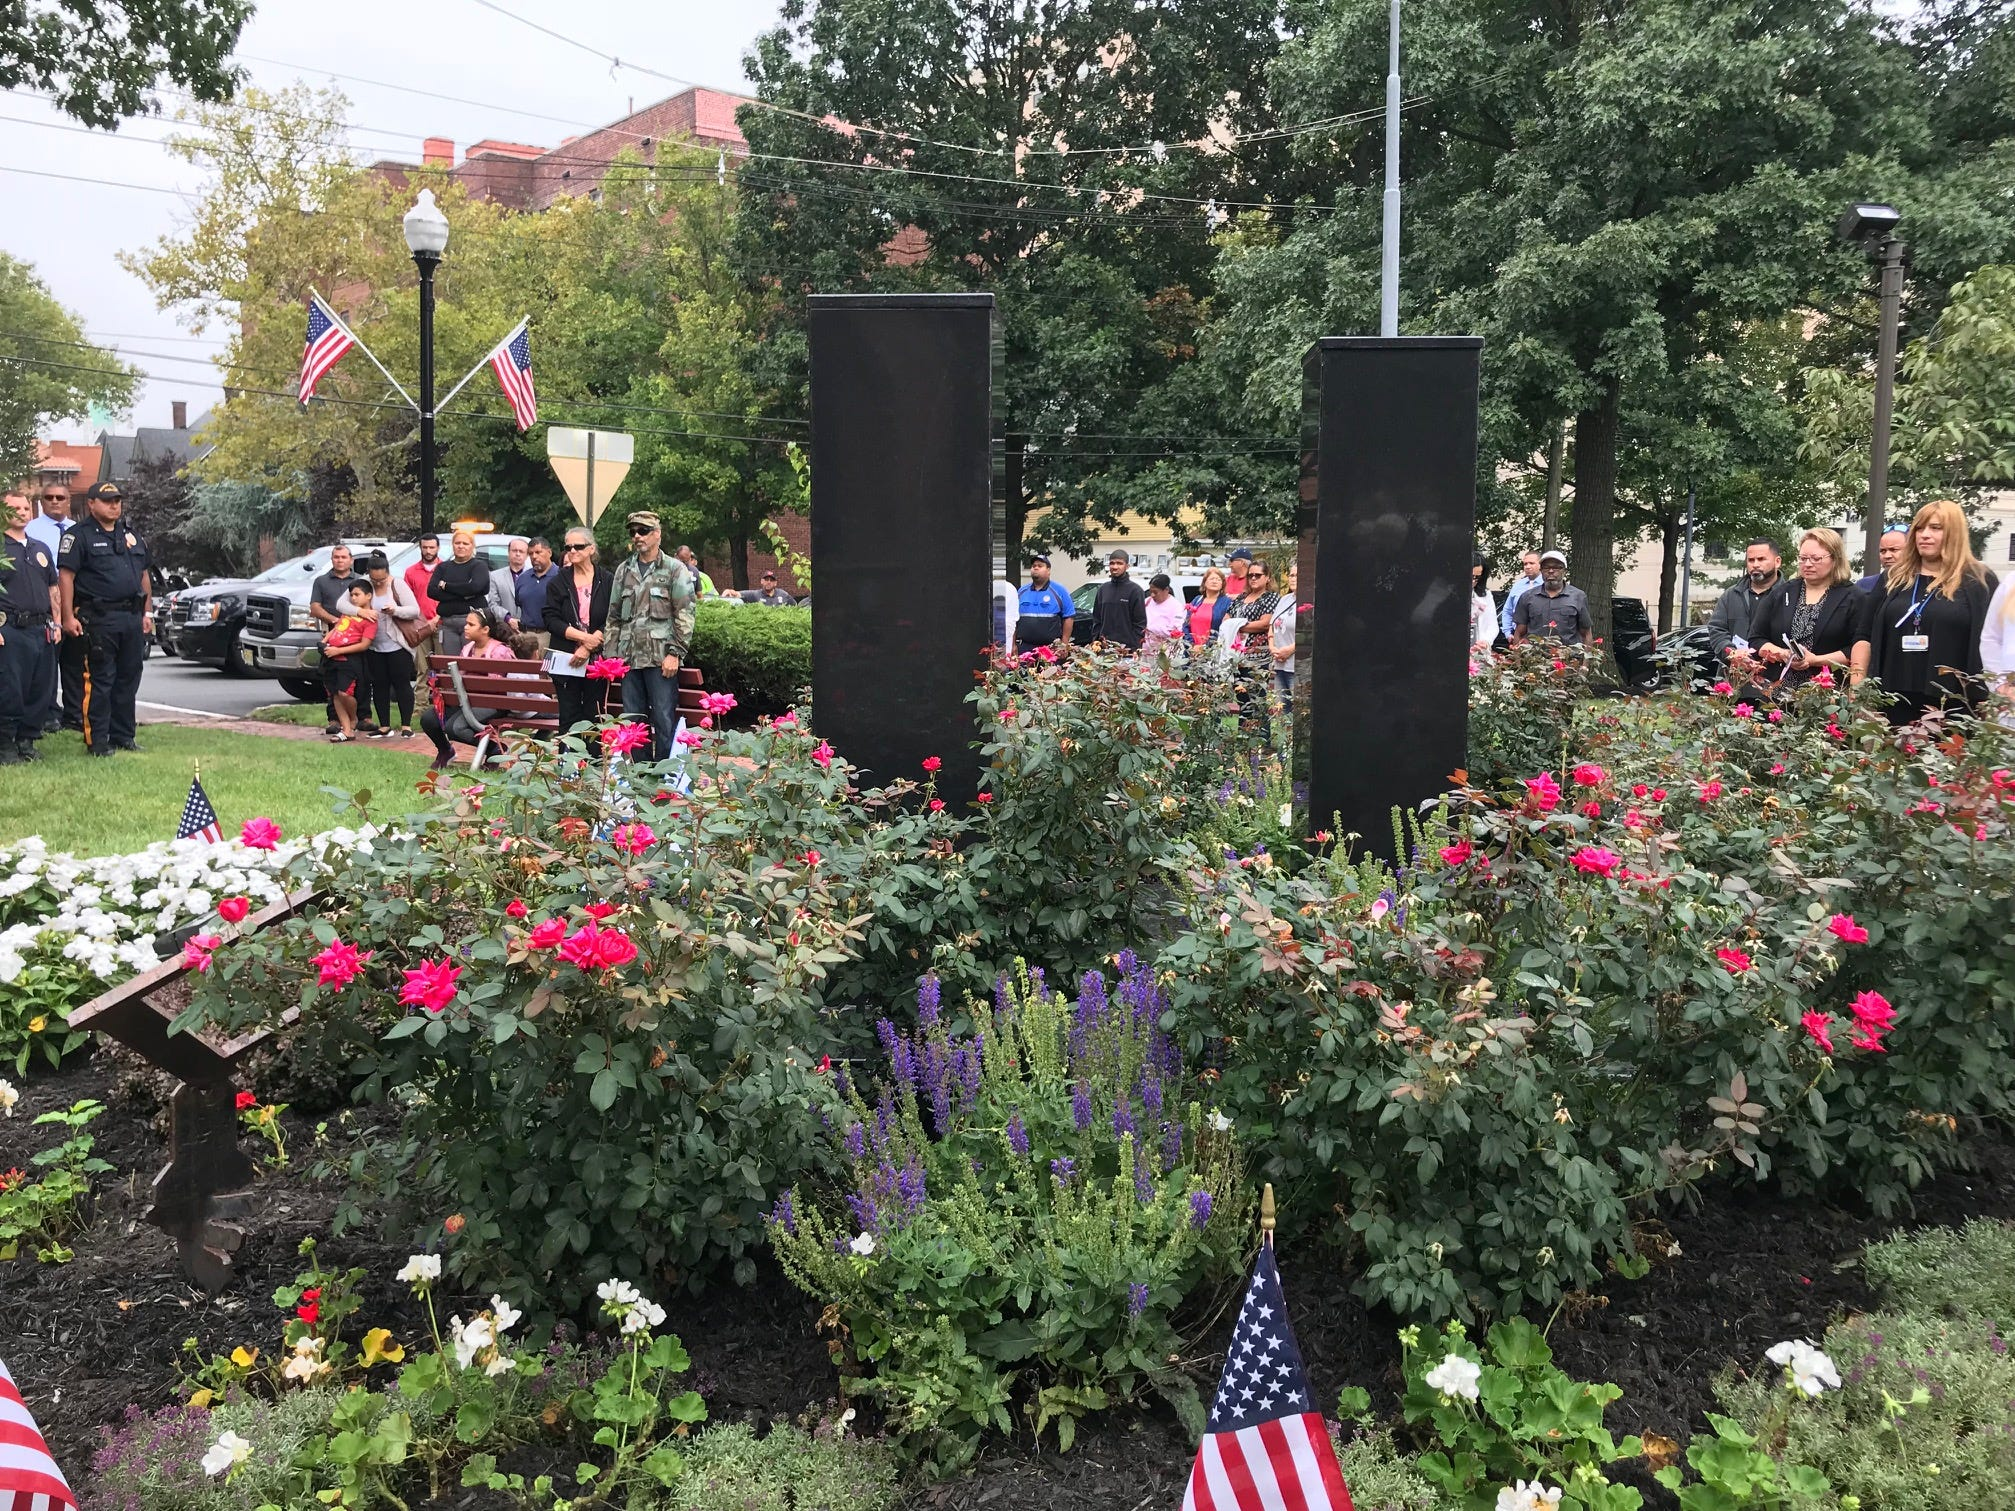 9/11 remembrance in Perth Amboy.